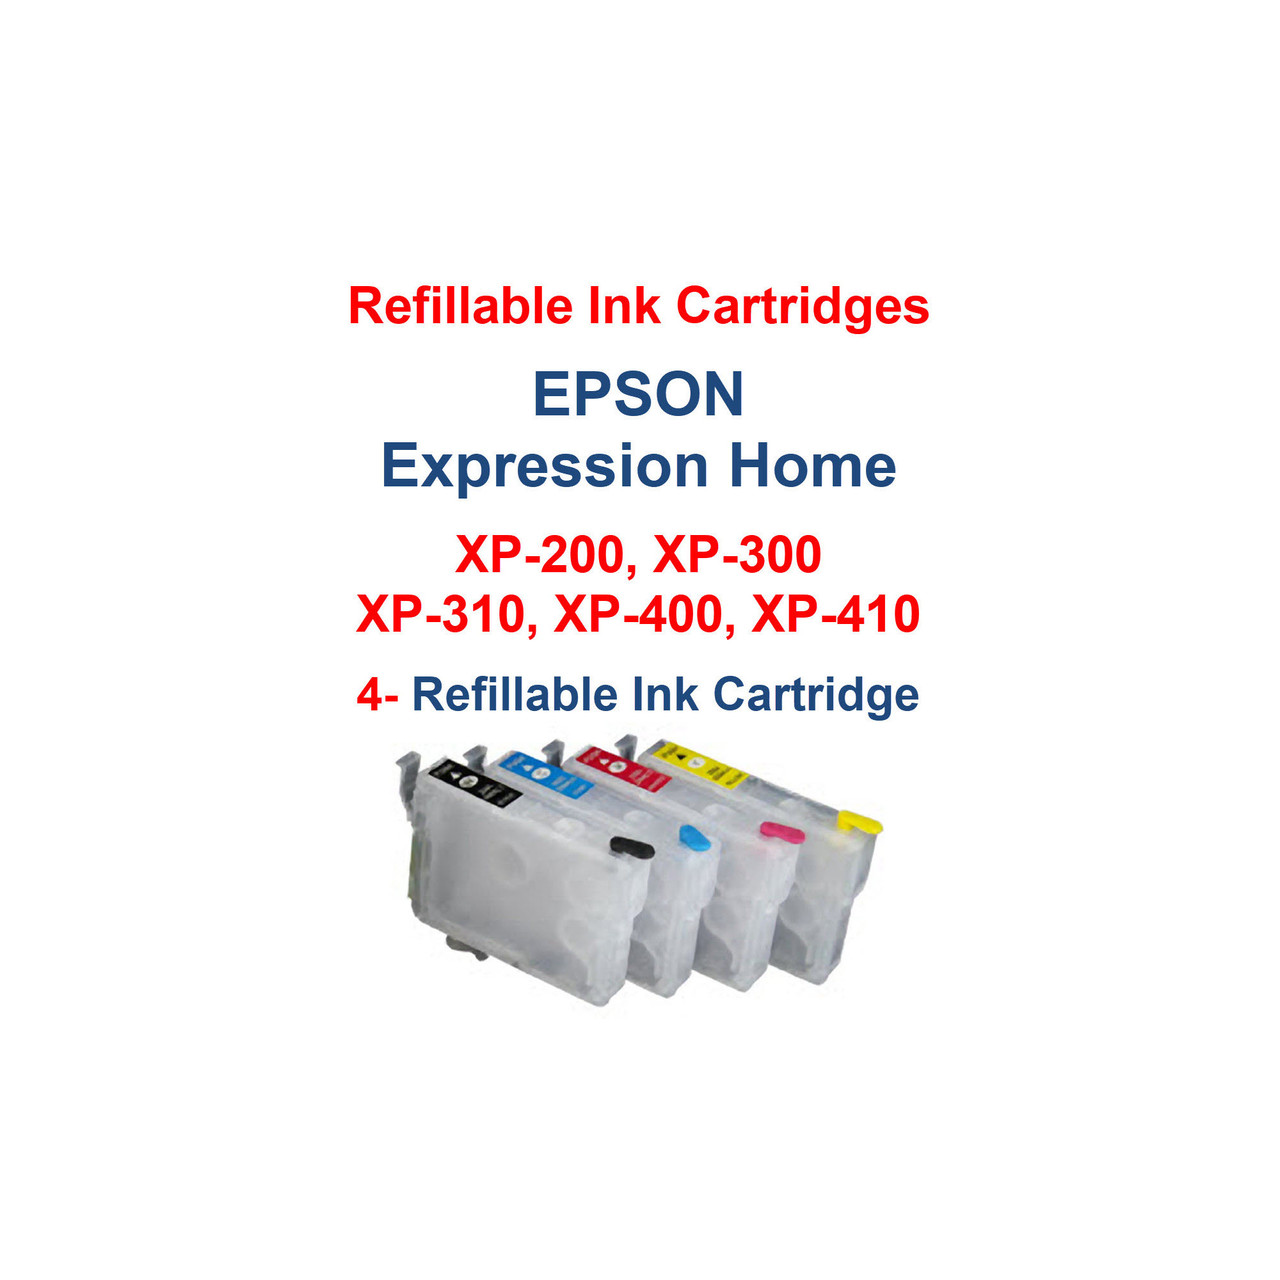 Refillable Ink Cartridges with auto reset chips installed for Epson Expression Home xp-200 xp-300 xp-310 xp-400 xp-410 printers  >> Package works with Printers: Epson Expression Home xp-200 Epson Expression Home xp-300 Epson Expression Home xp-310 Epson Expression Home xp-400 Epson Expression Home xp-410  Compatible with cartridge number: T200XL120, T200XL220, T200XL320, T200XL420  Package includes:  4- Refillable Ink Cartridges with auto reset chips 4- Syringes for filling cartridges  >> Our Refillable Cartridges have a Auto Reset Chip installed on them, no chip Resetter is needed   >>> Los Angeles same day delivery available (Contact us for pricing) <<<